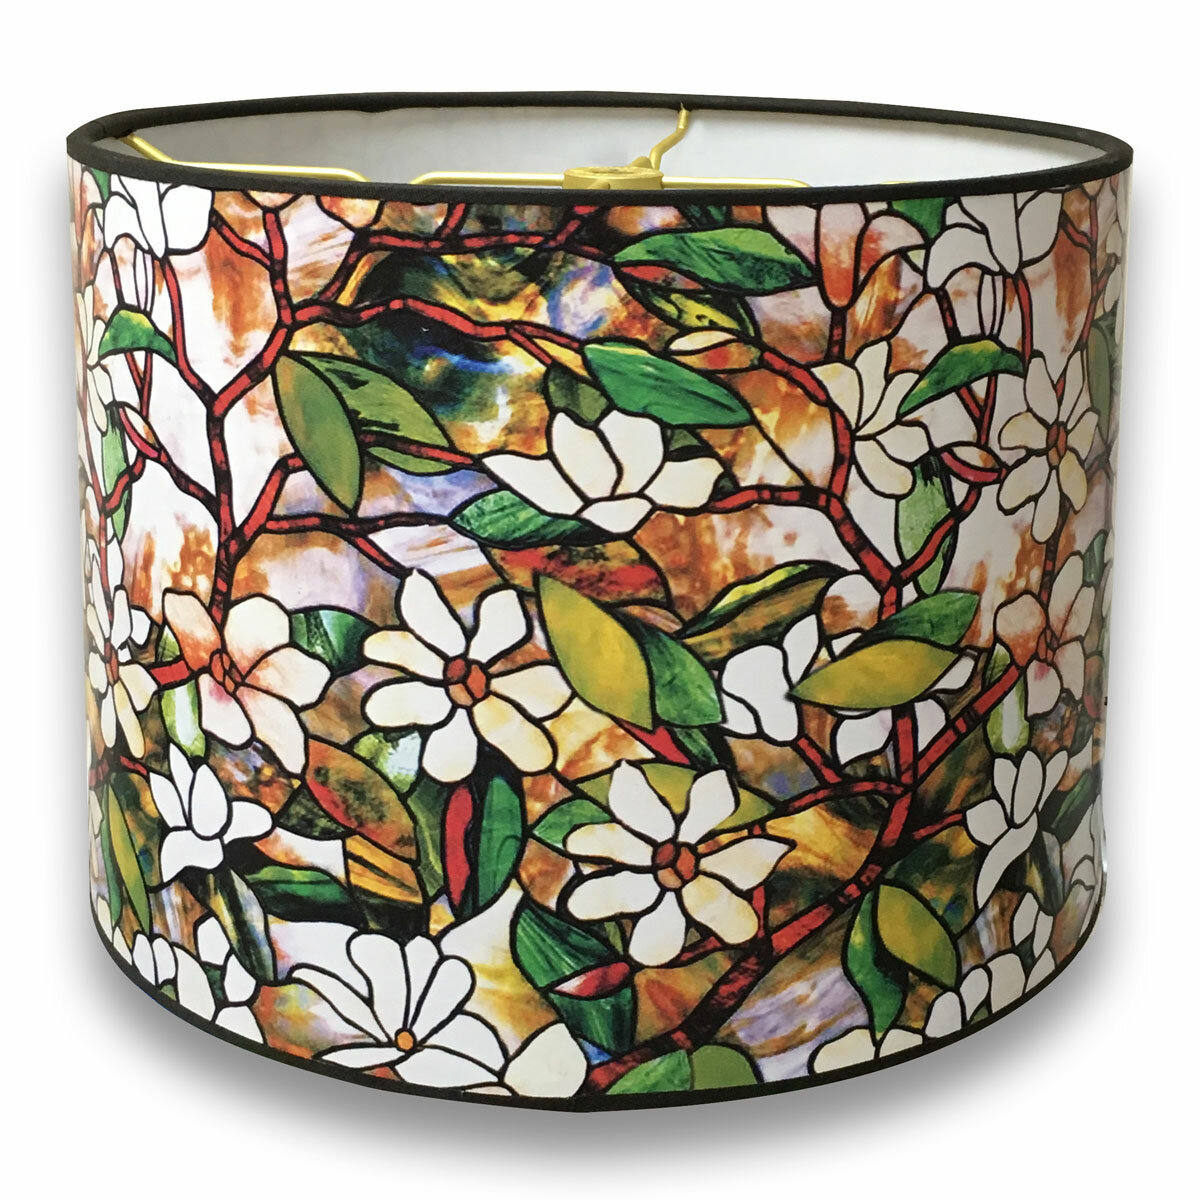 Royaldesigns magnolia stained glass printed designer hard back 10 royaldesigns magnolia stained glass printed designer hard back 10 paper drum lamp shade reviews wayfair aloadofball Image collections